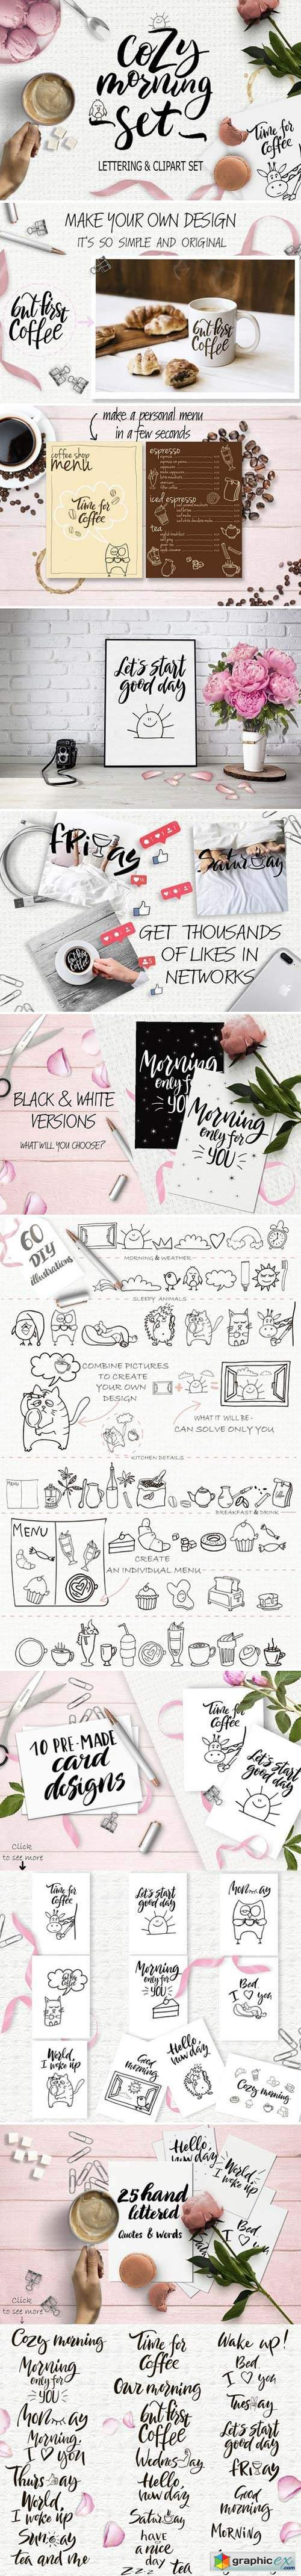 Cozy morning: lettering & clipart